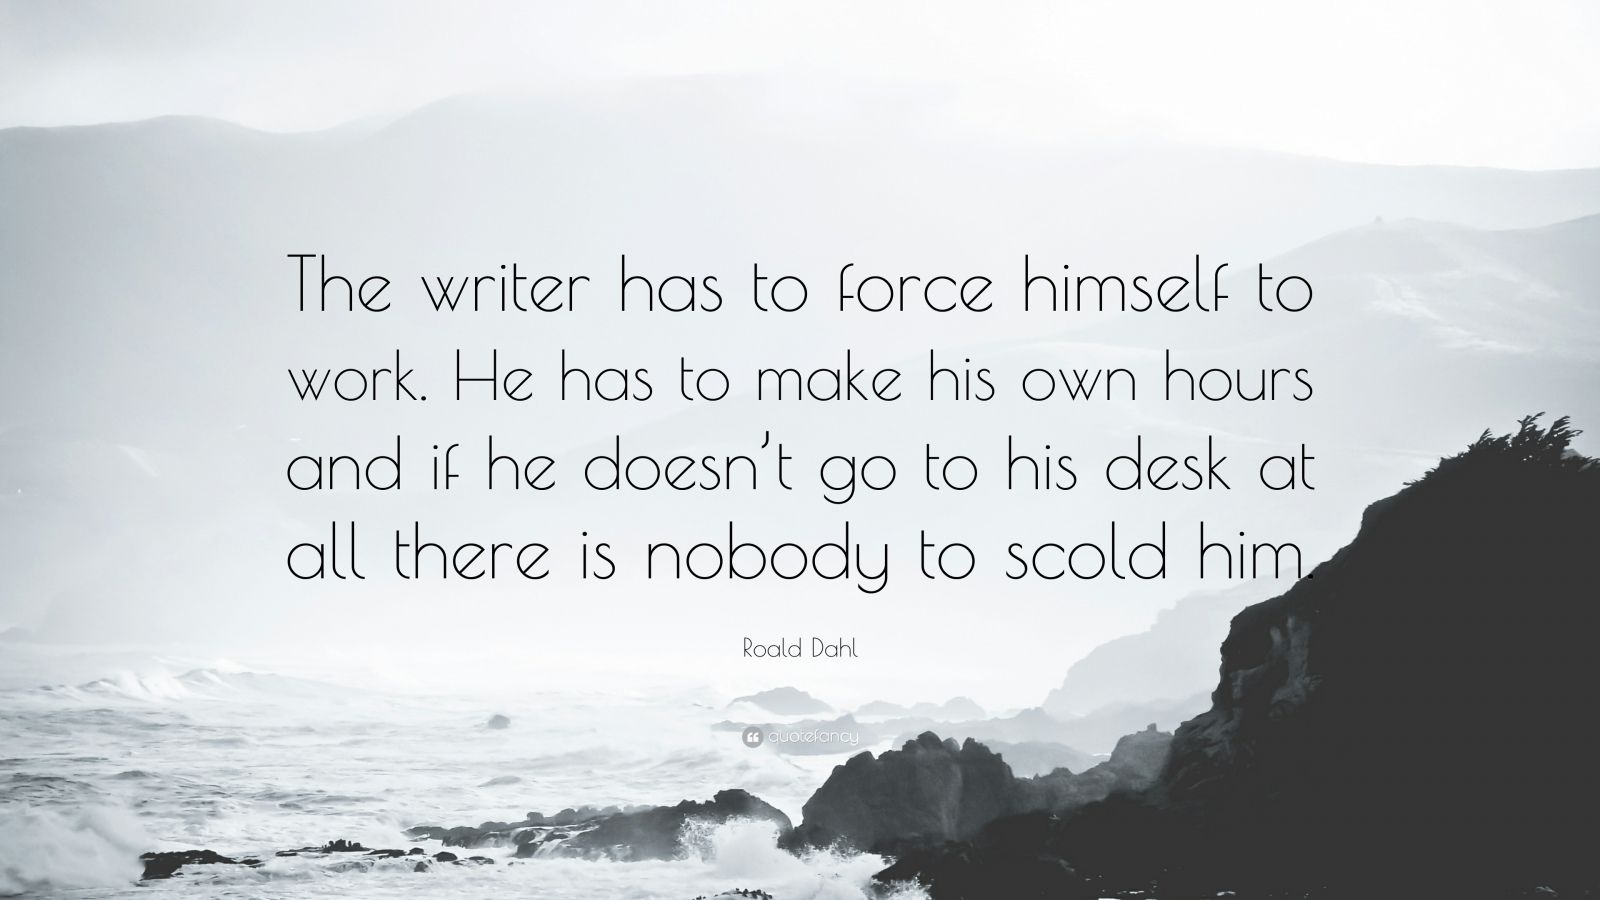 """Roald Dahl Quote: """"The writer has to force himself to work. He has to make his own hours and if he doesn't go to his desk at all there is nobody to scold him."""""""